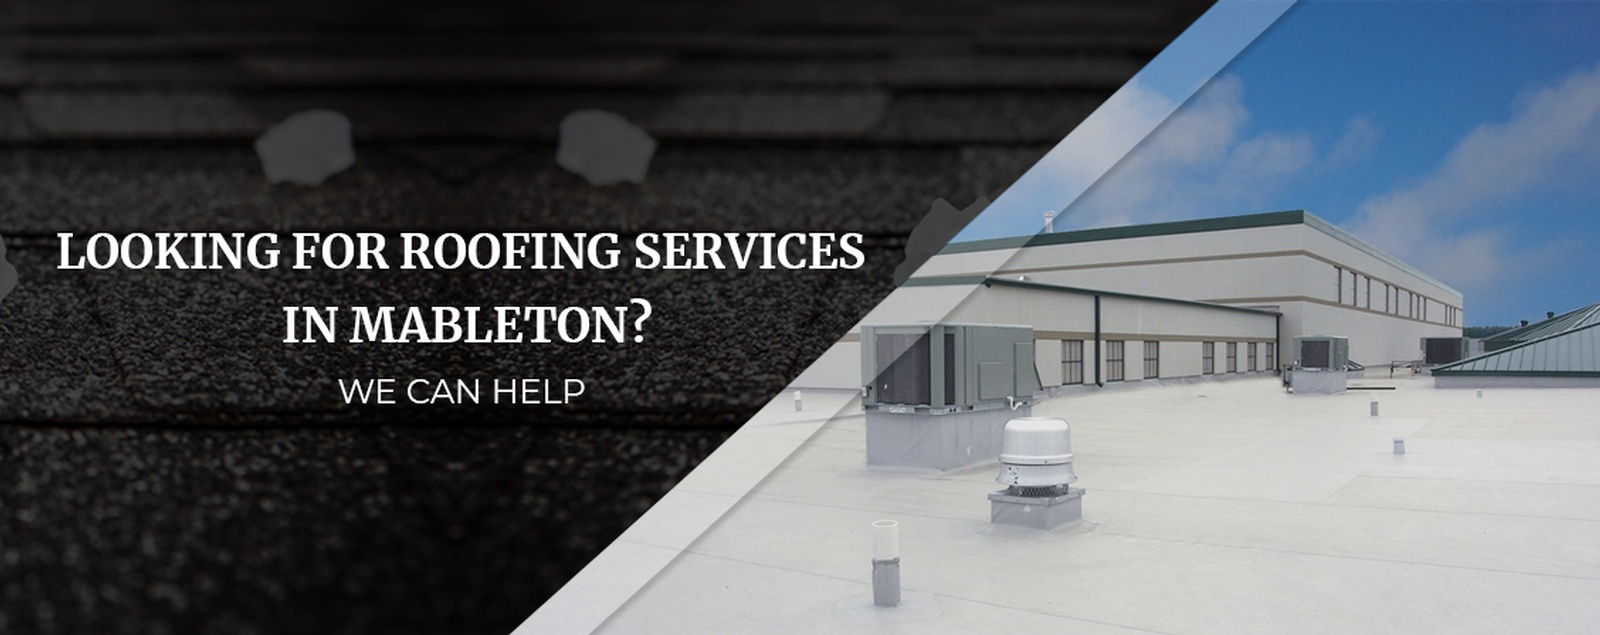 Looking For Roofing Services In Mableton  We Can Help